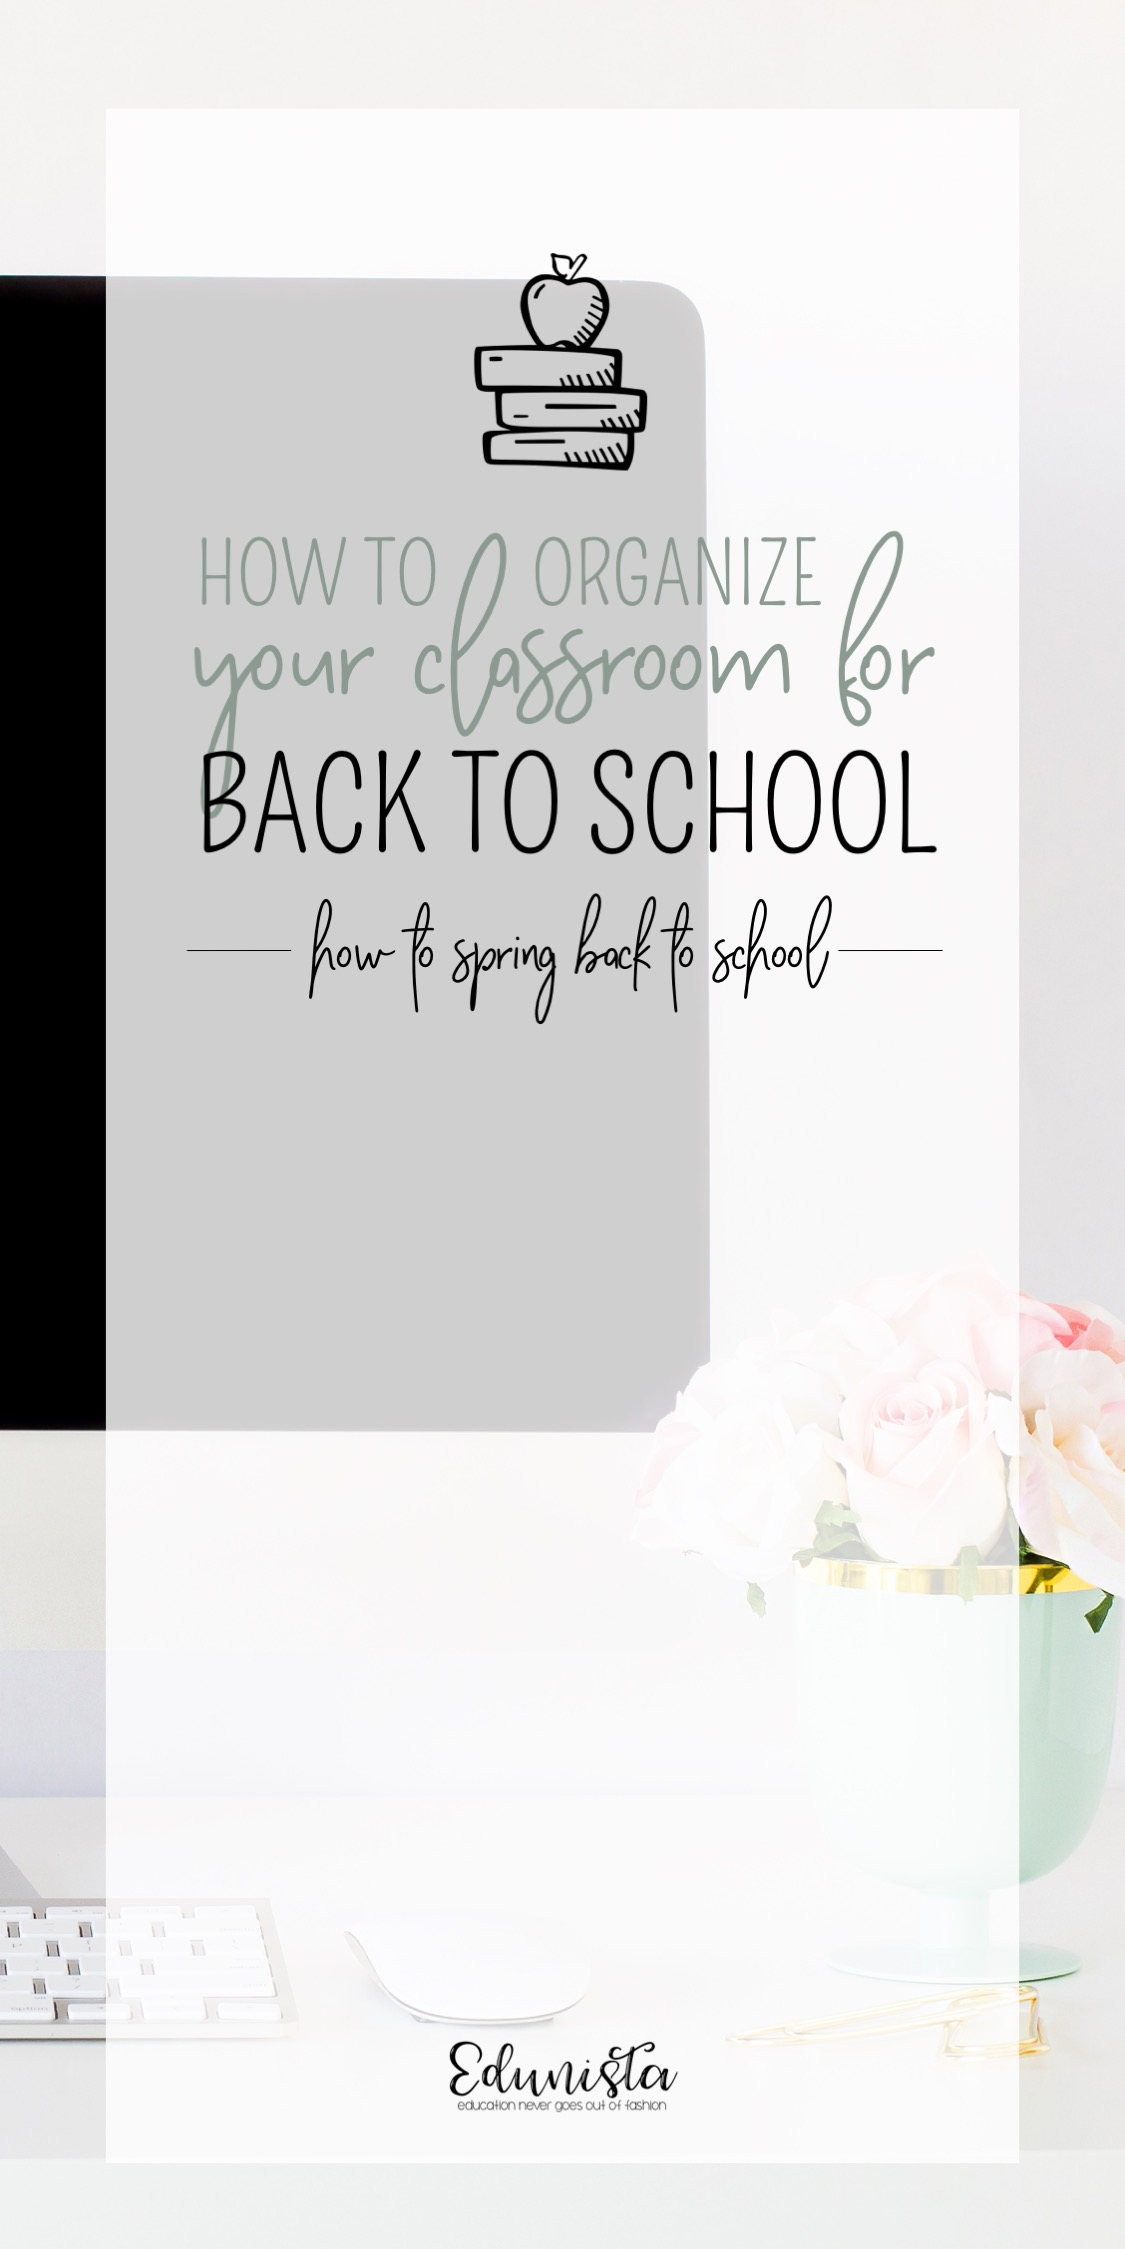 Need to save this post! It's filled great ideas to help get my classroom organized for next school year! Love the idea of getting ready for back to school, now, in the spring!